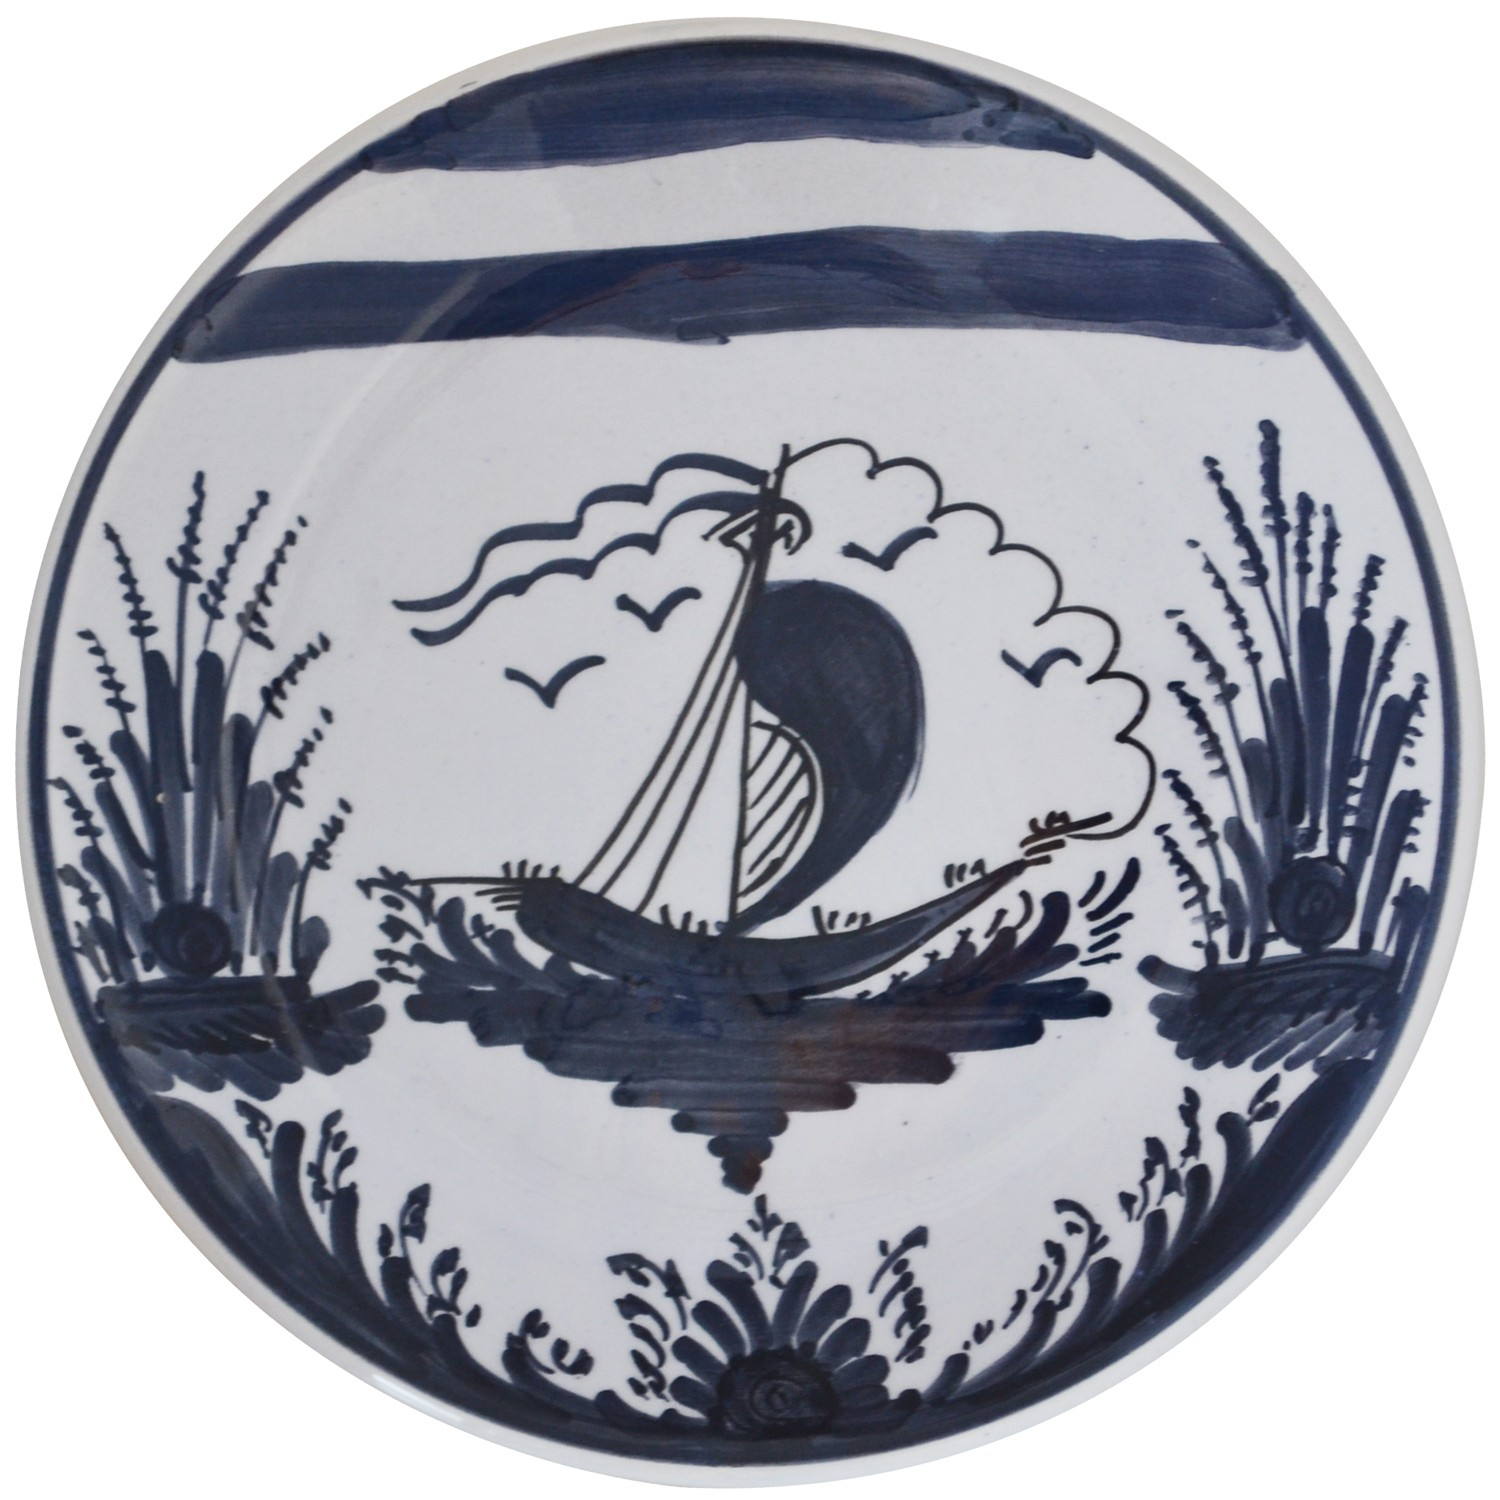 Hand_Painted_Ceramic_Dessert_Decorative_Plates-Sailing_Boat-1